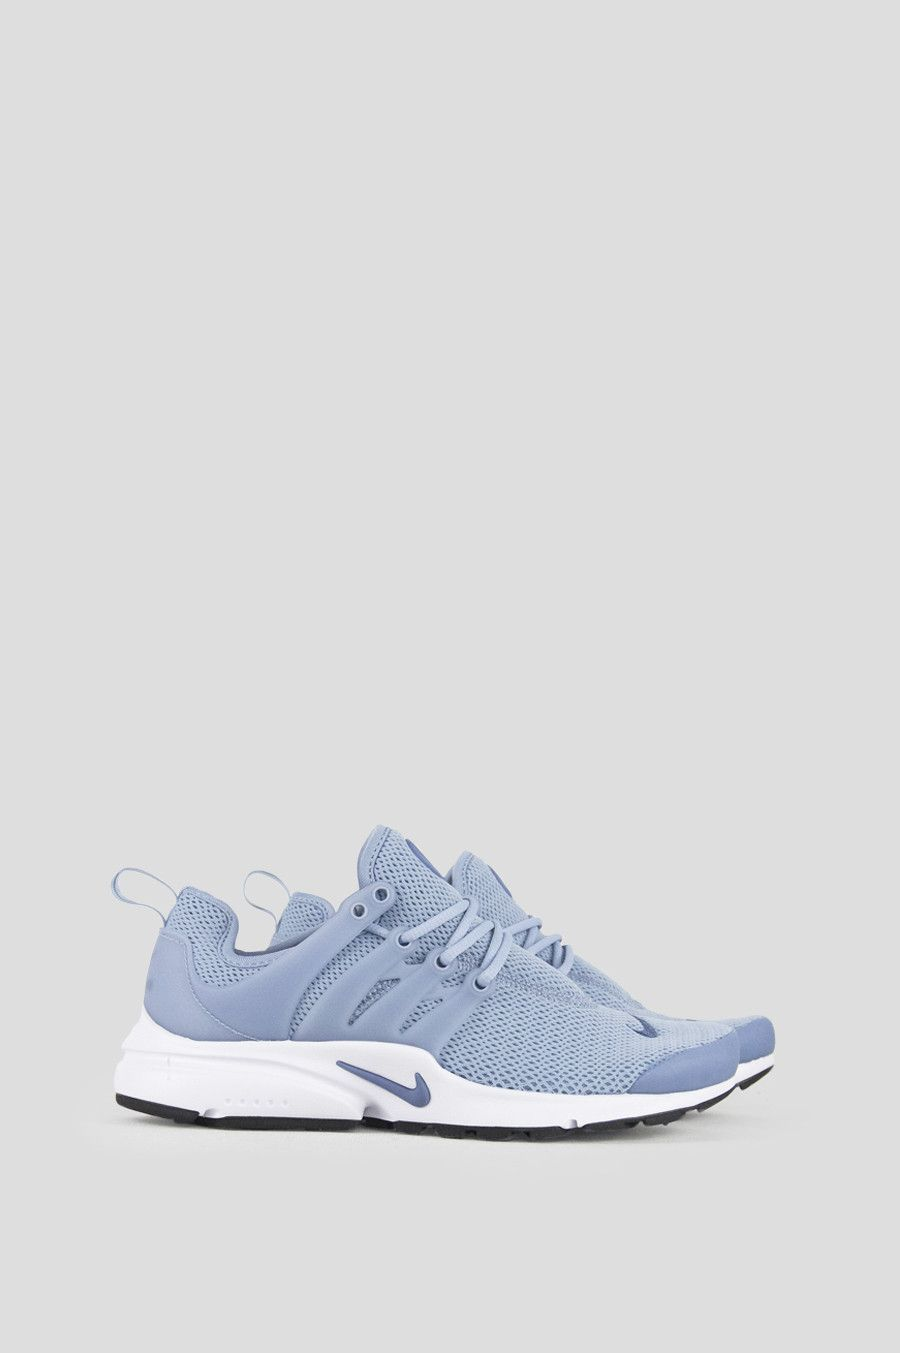 new arrival 8f10d b99b8 The Nike Air Presto Women s Shoe is inspired by the comfort and minimalism  of a classic T-shirt for lightweight everyday comfort. - Product Code   878068-400 ...